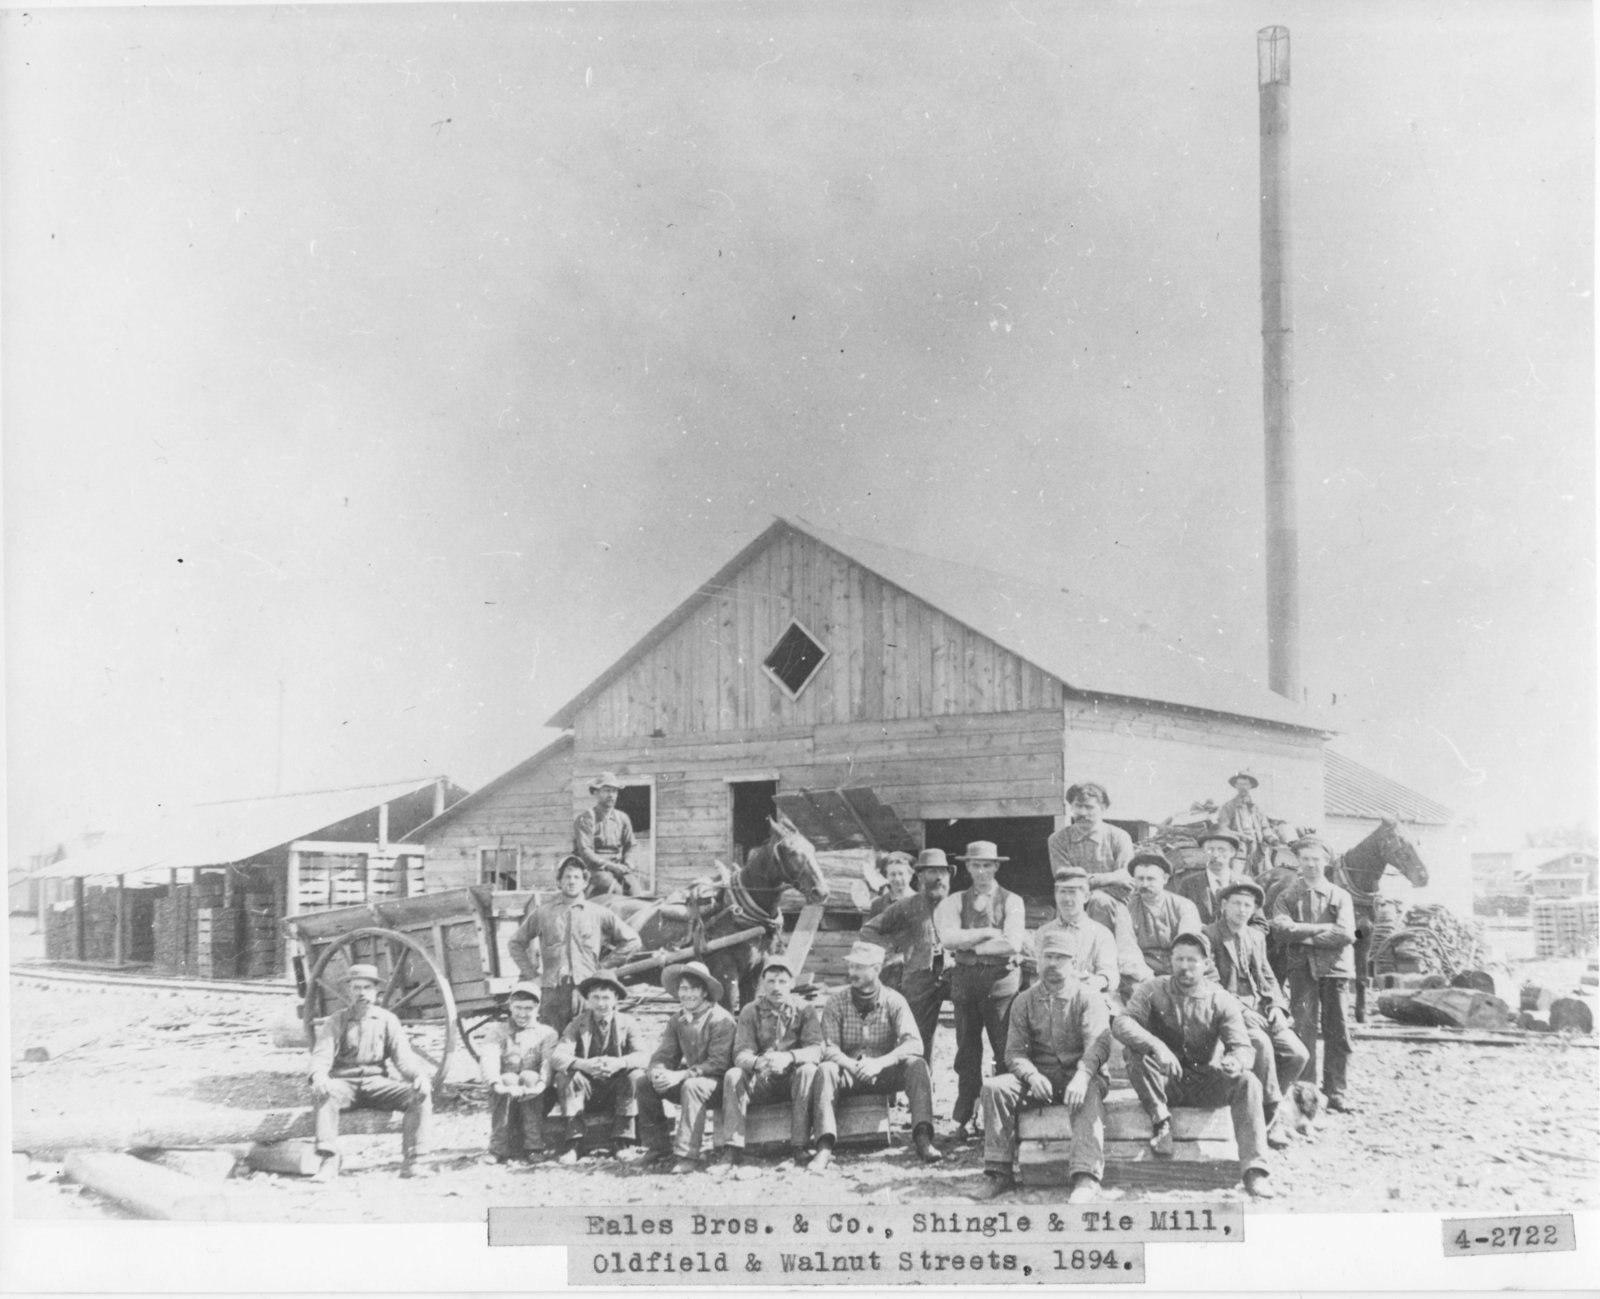 Eales Brothers & Company Shingle & Tie Mill